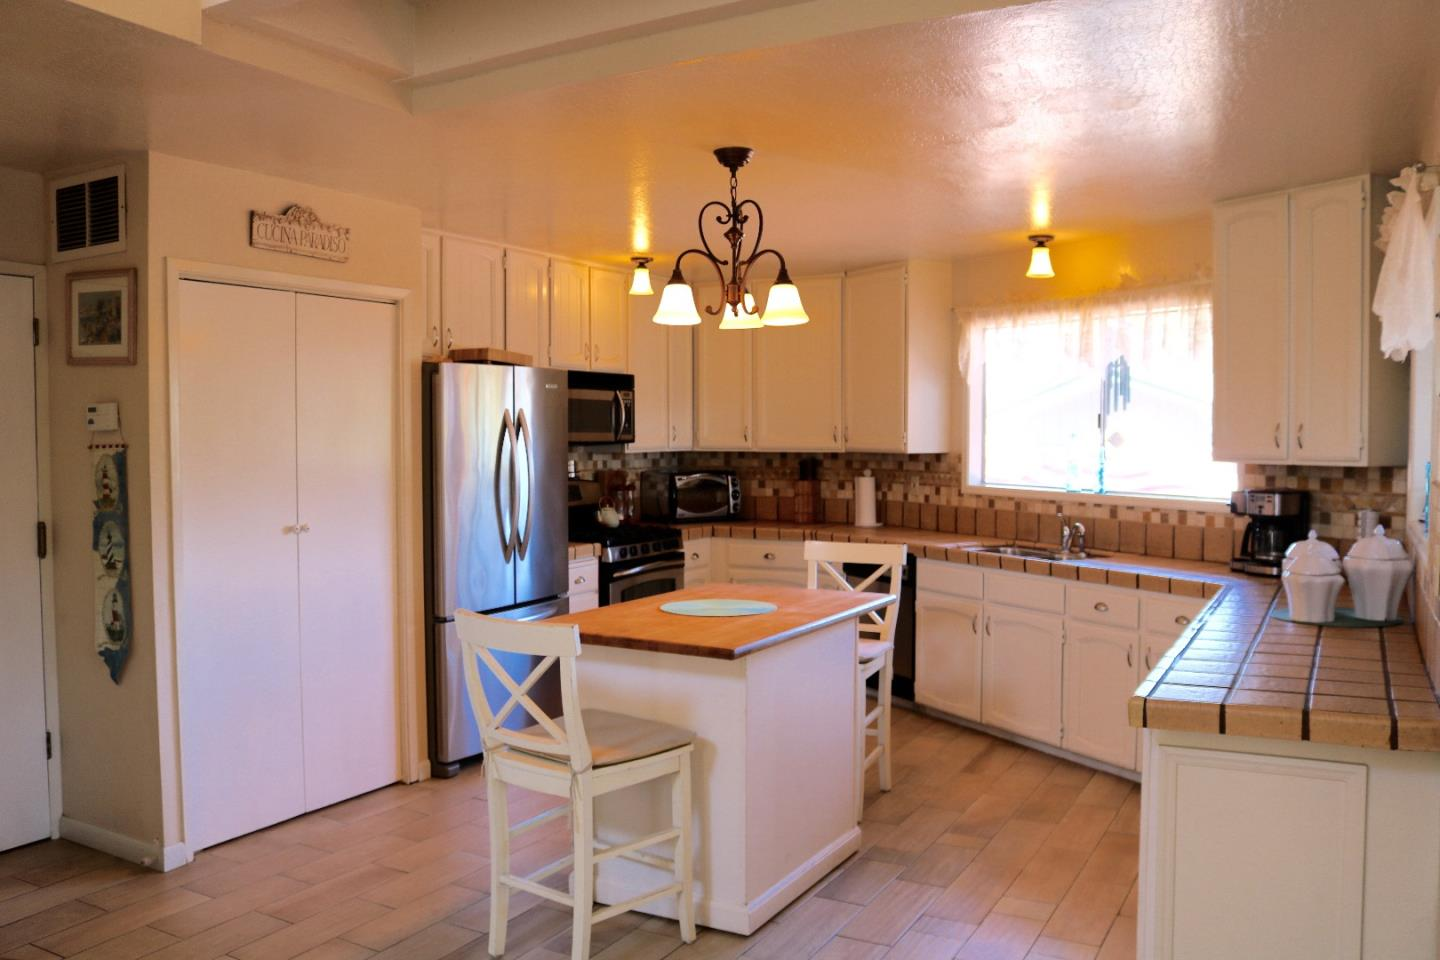 Additional photo for property listing at 650 24th Avenue  Santa Cruz, California 95062 United States